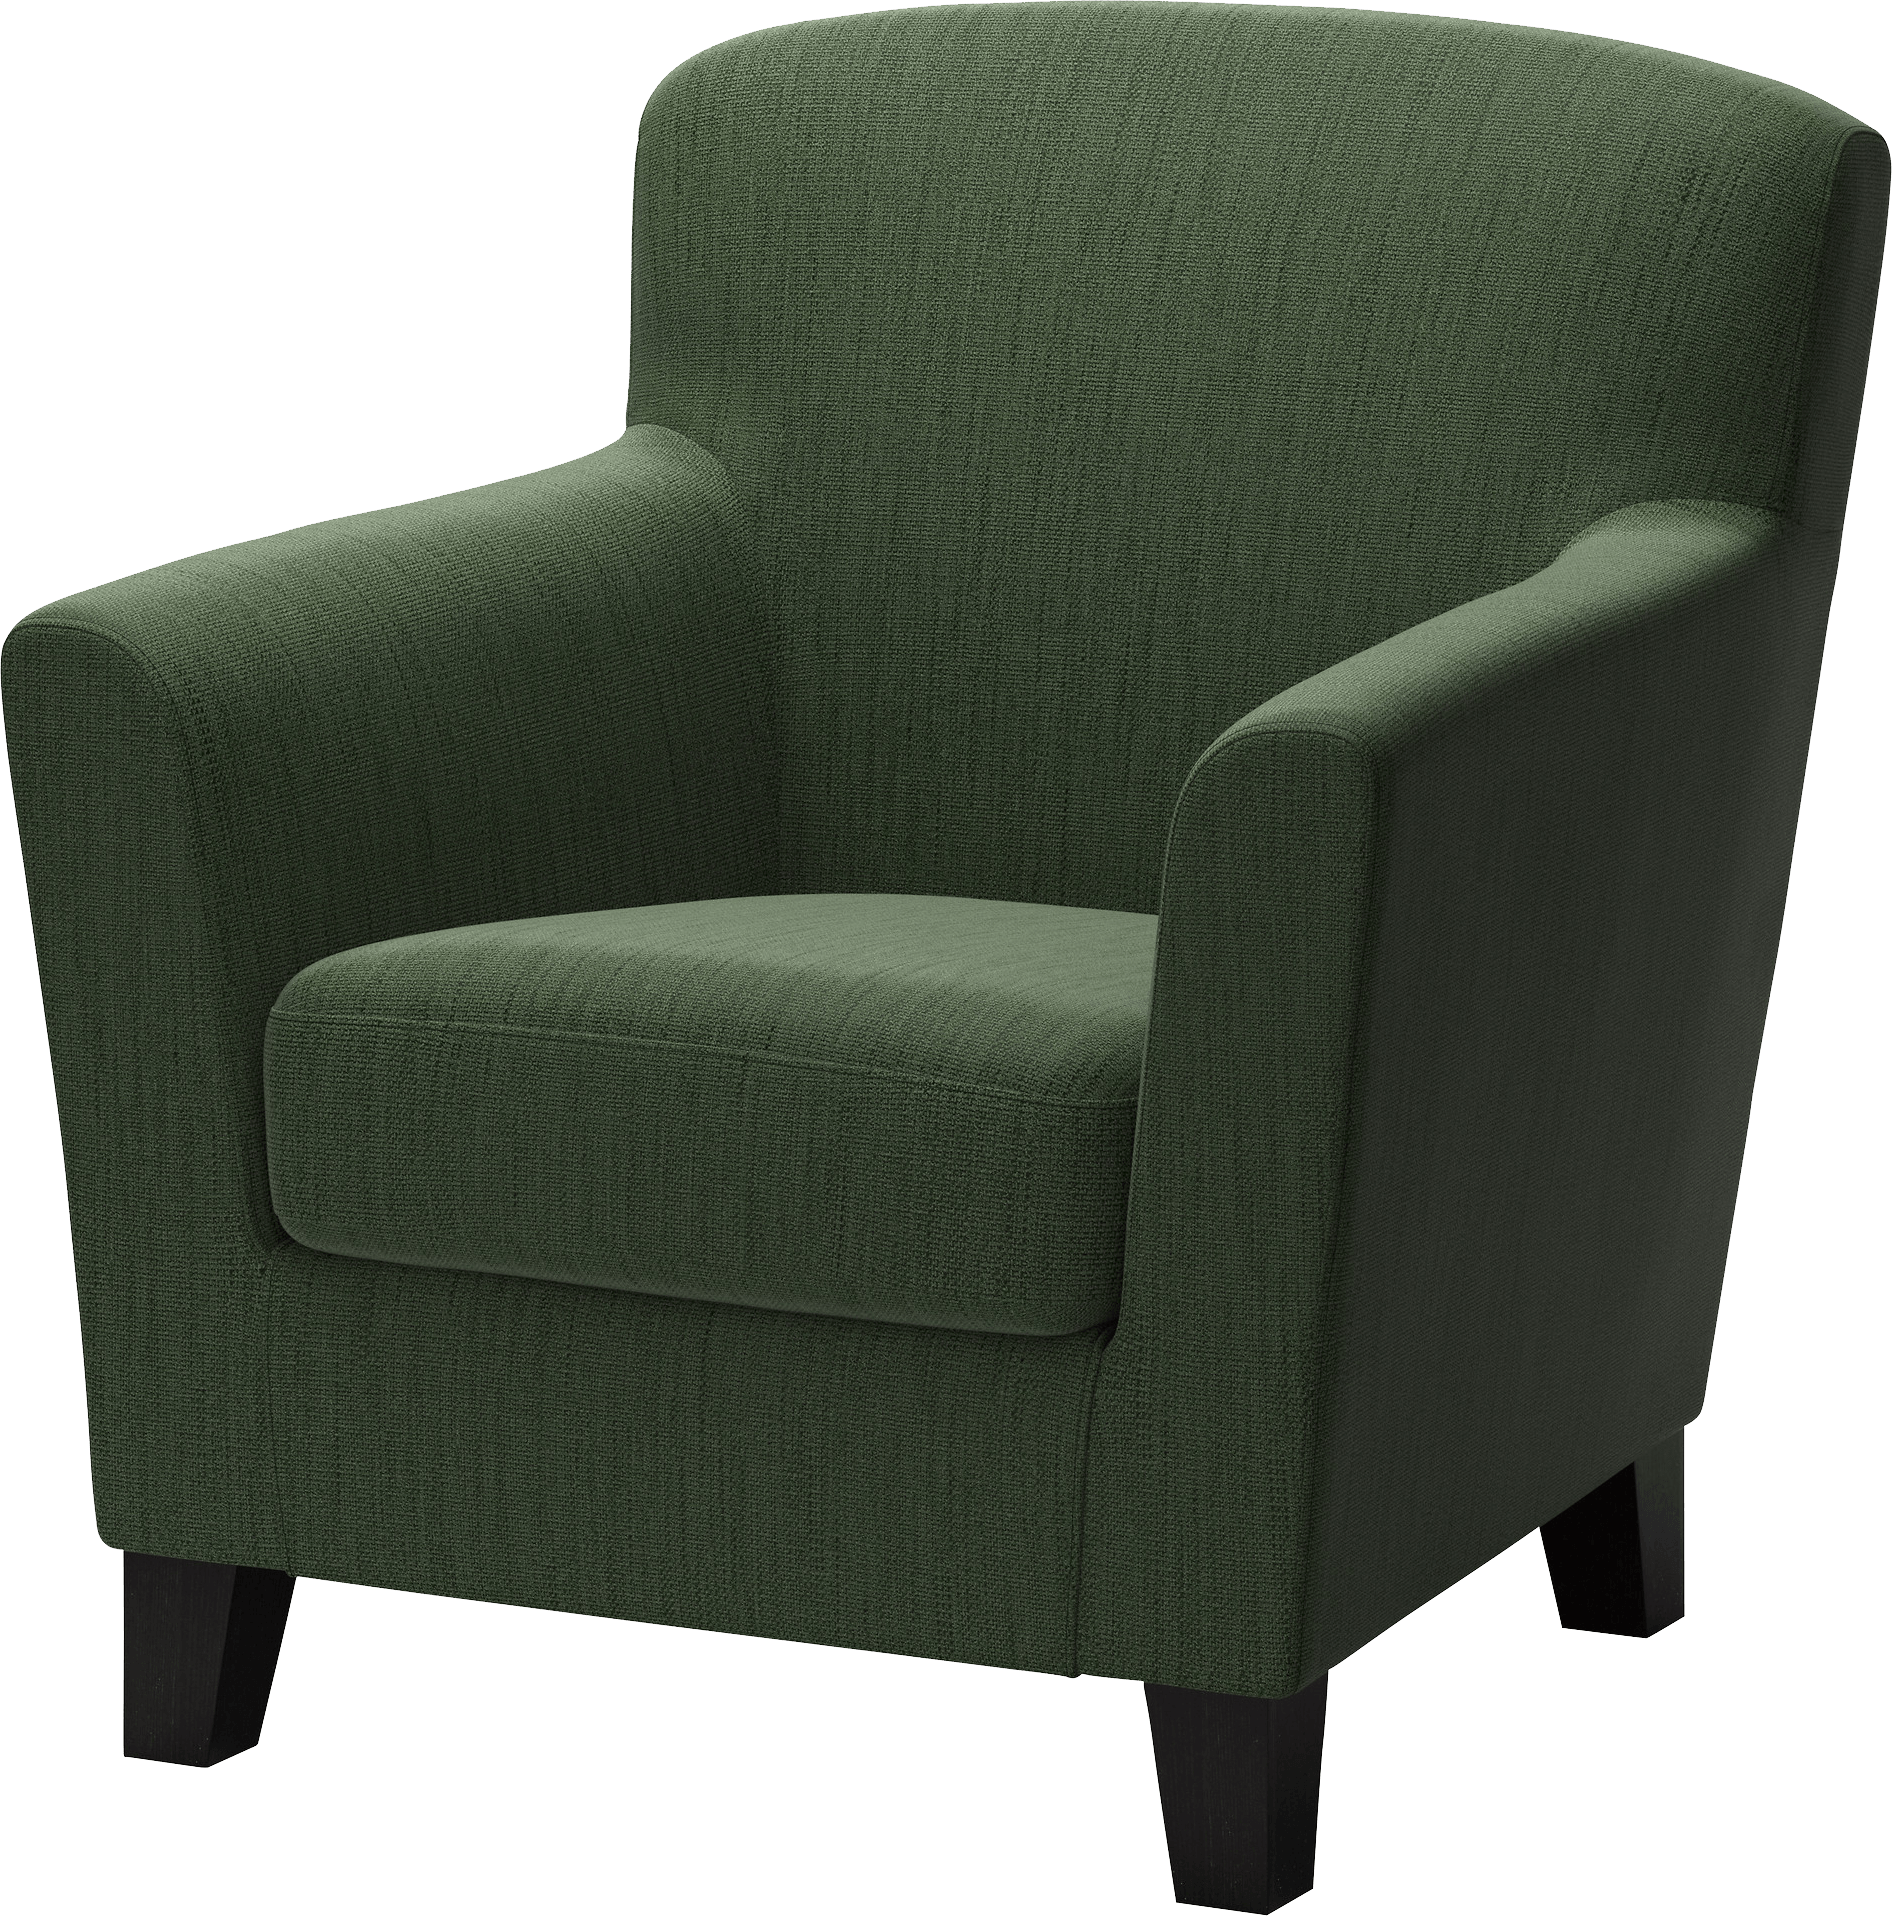 Armchair PNG Photos SVG Clip arts